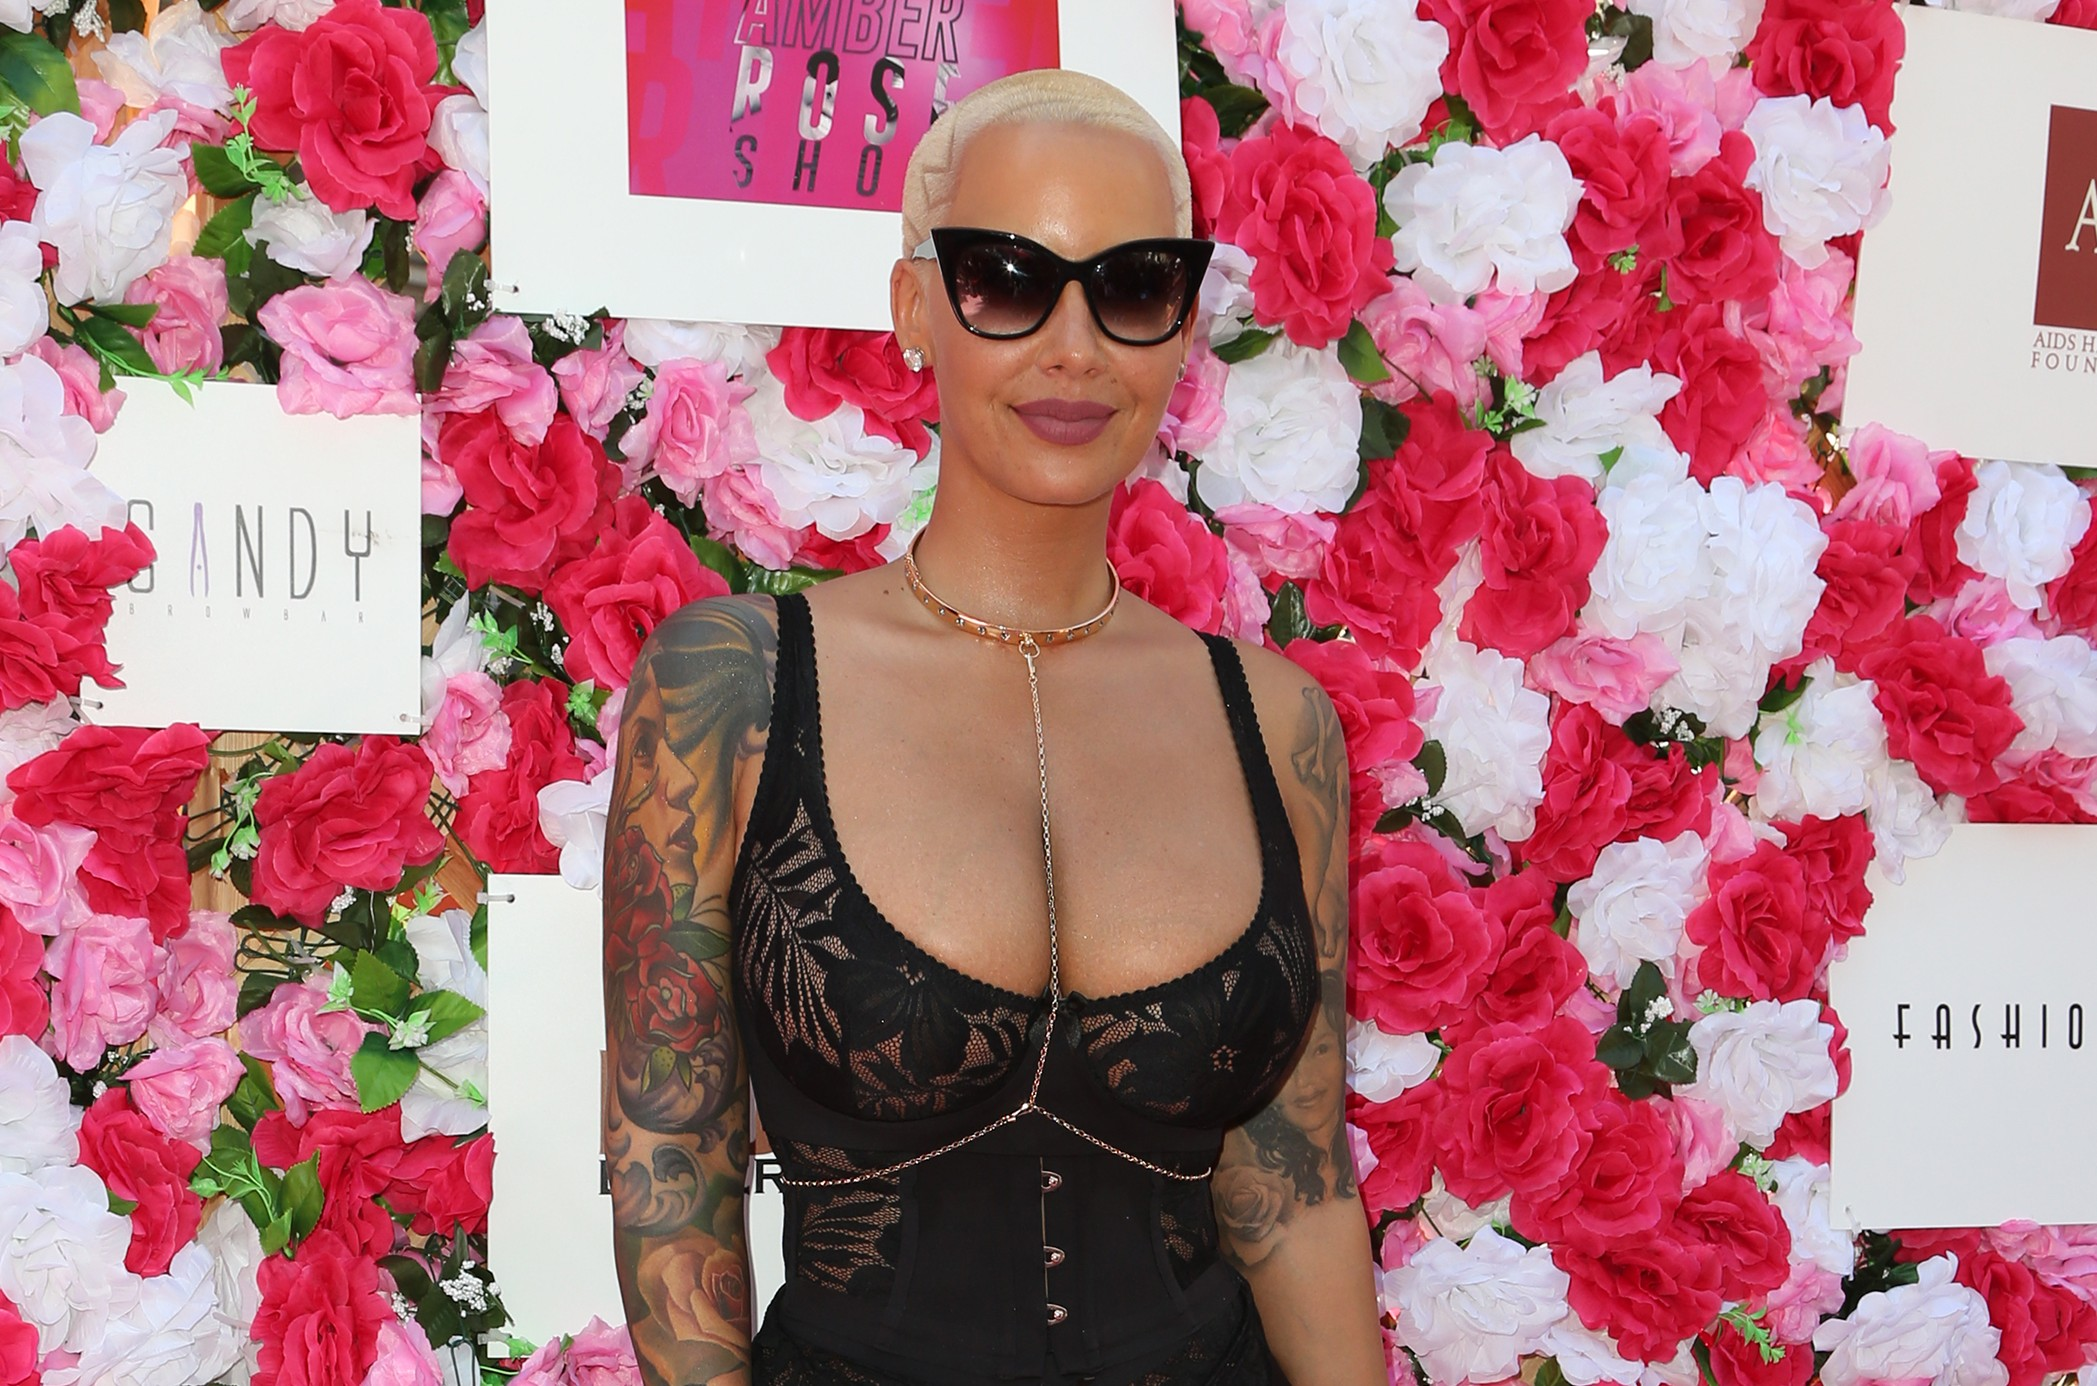 Amber Rose boasted her new cleavage after having undergone breast reduction surgery. (Photo: WENN)